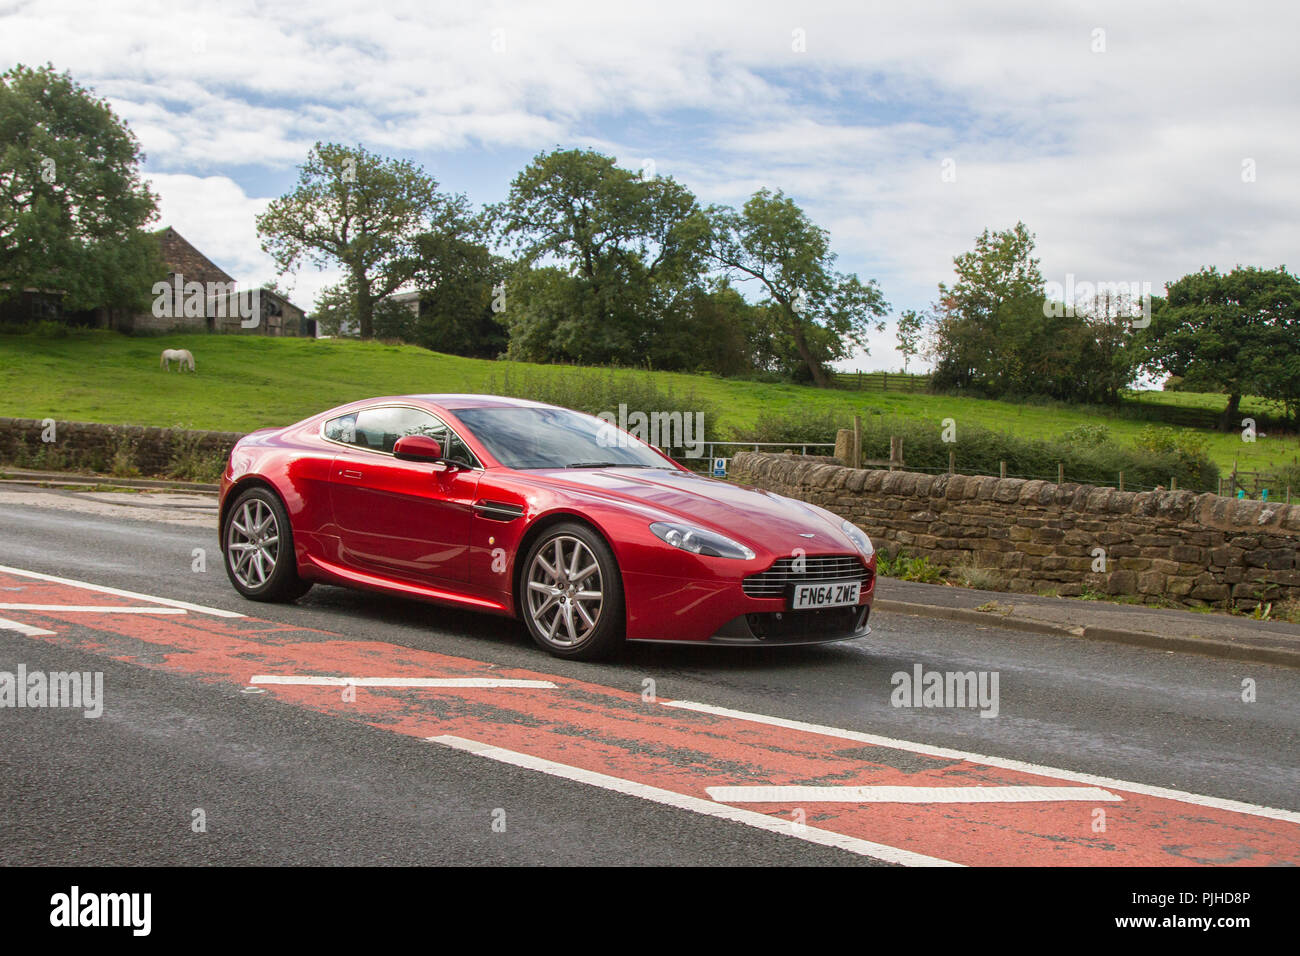 Aston Martin Vantage V8 Classic, vintage, veteran, cars of yesteryear, restored collectibles at Hoghton Tower Car Rally, UK - Stock Image